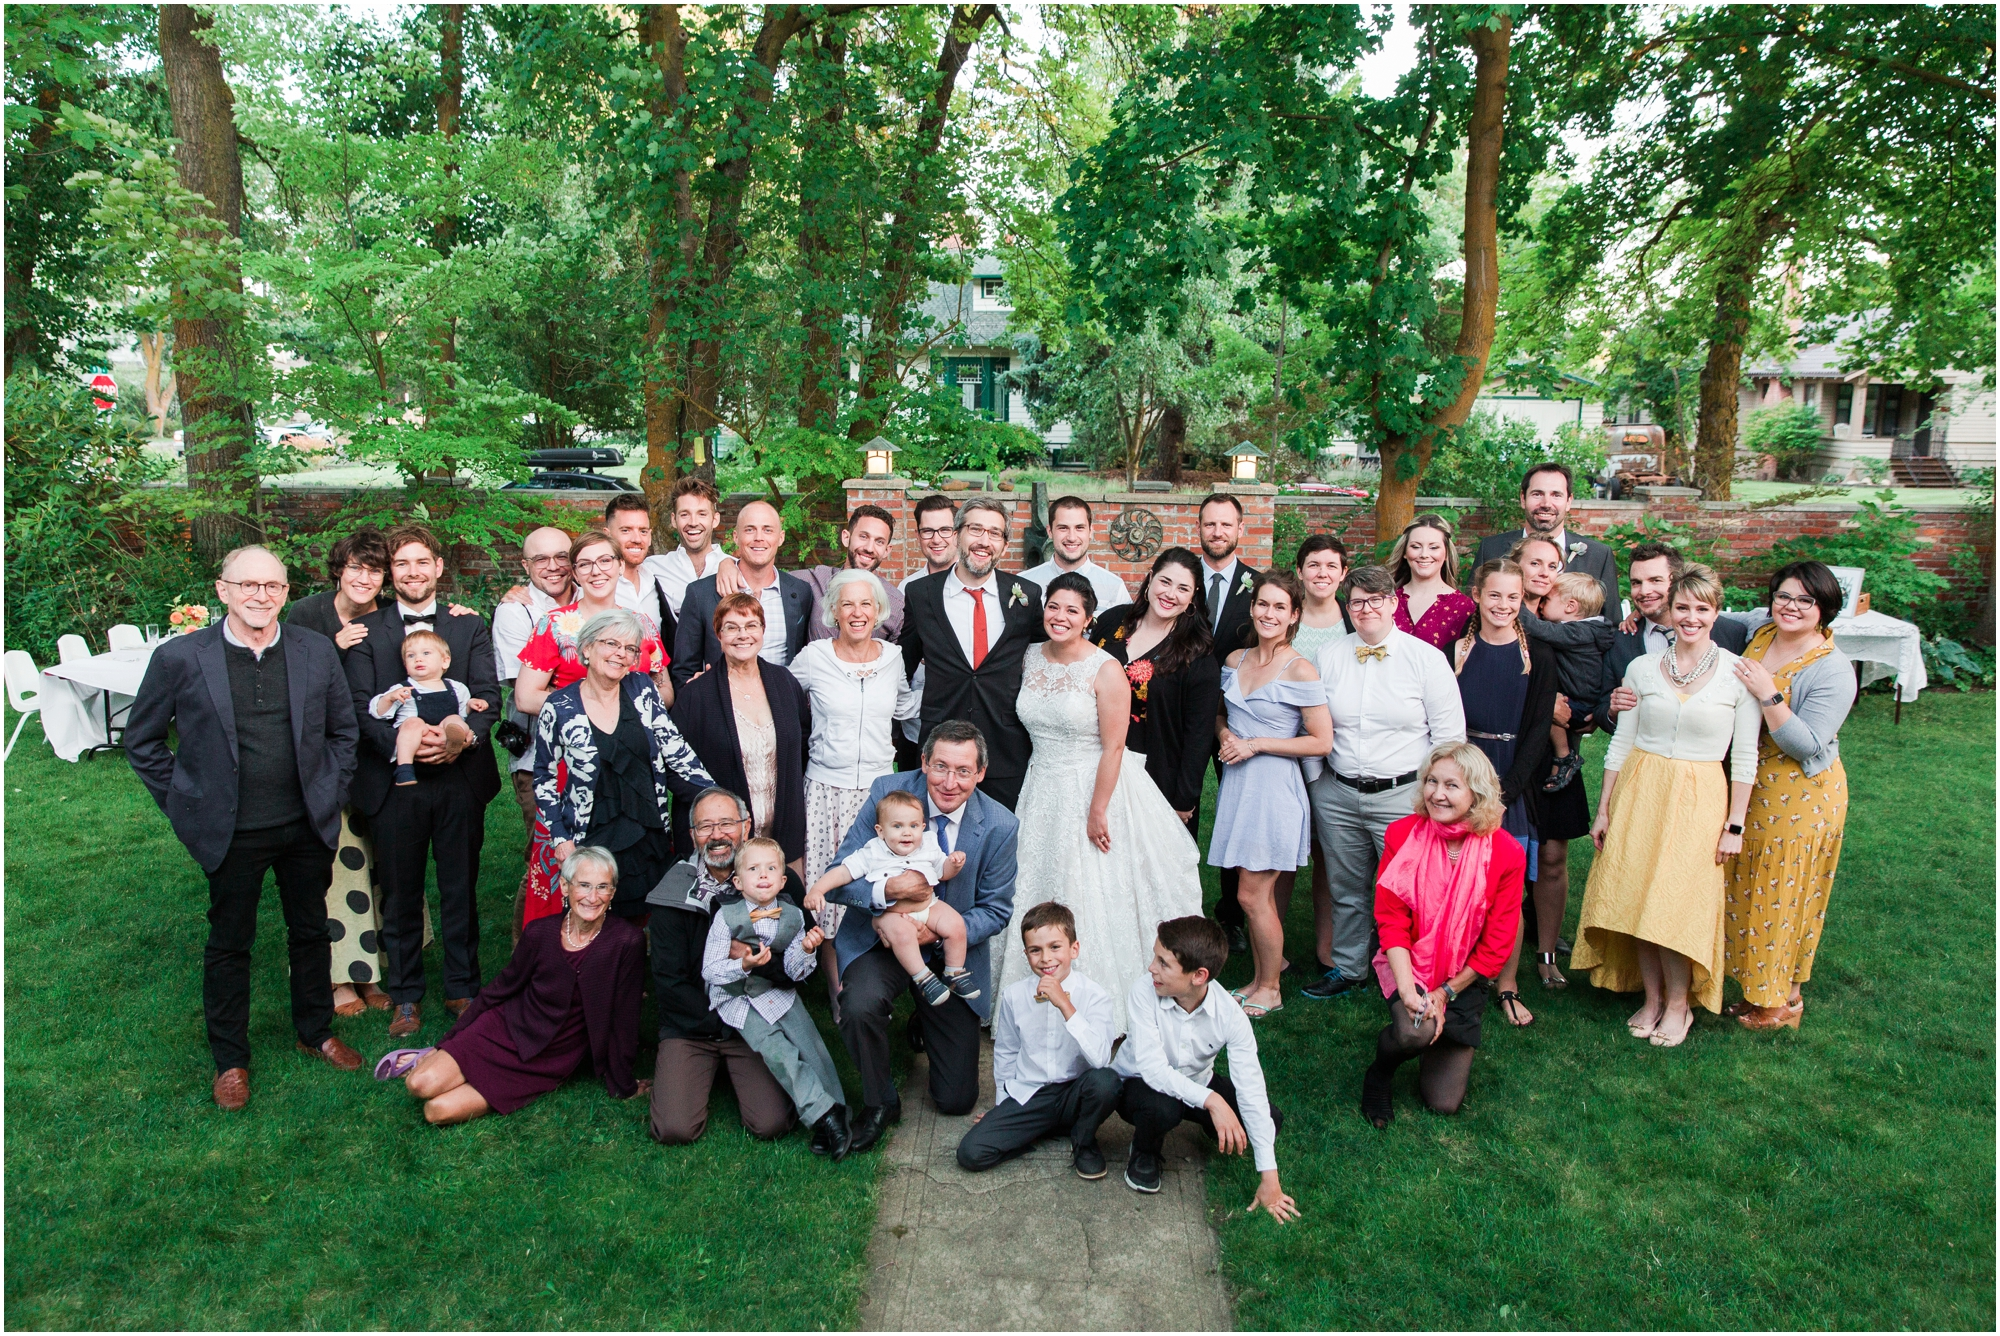 Garden wedding in Ellensburg, WA. Photos by Briana Calderon Photography based in the greater Seattle-Tacoma Area._1361.jpg